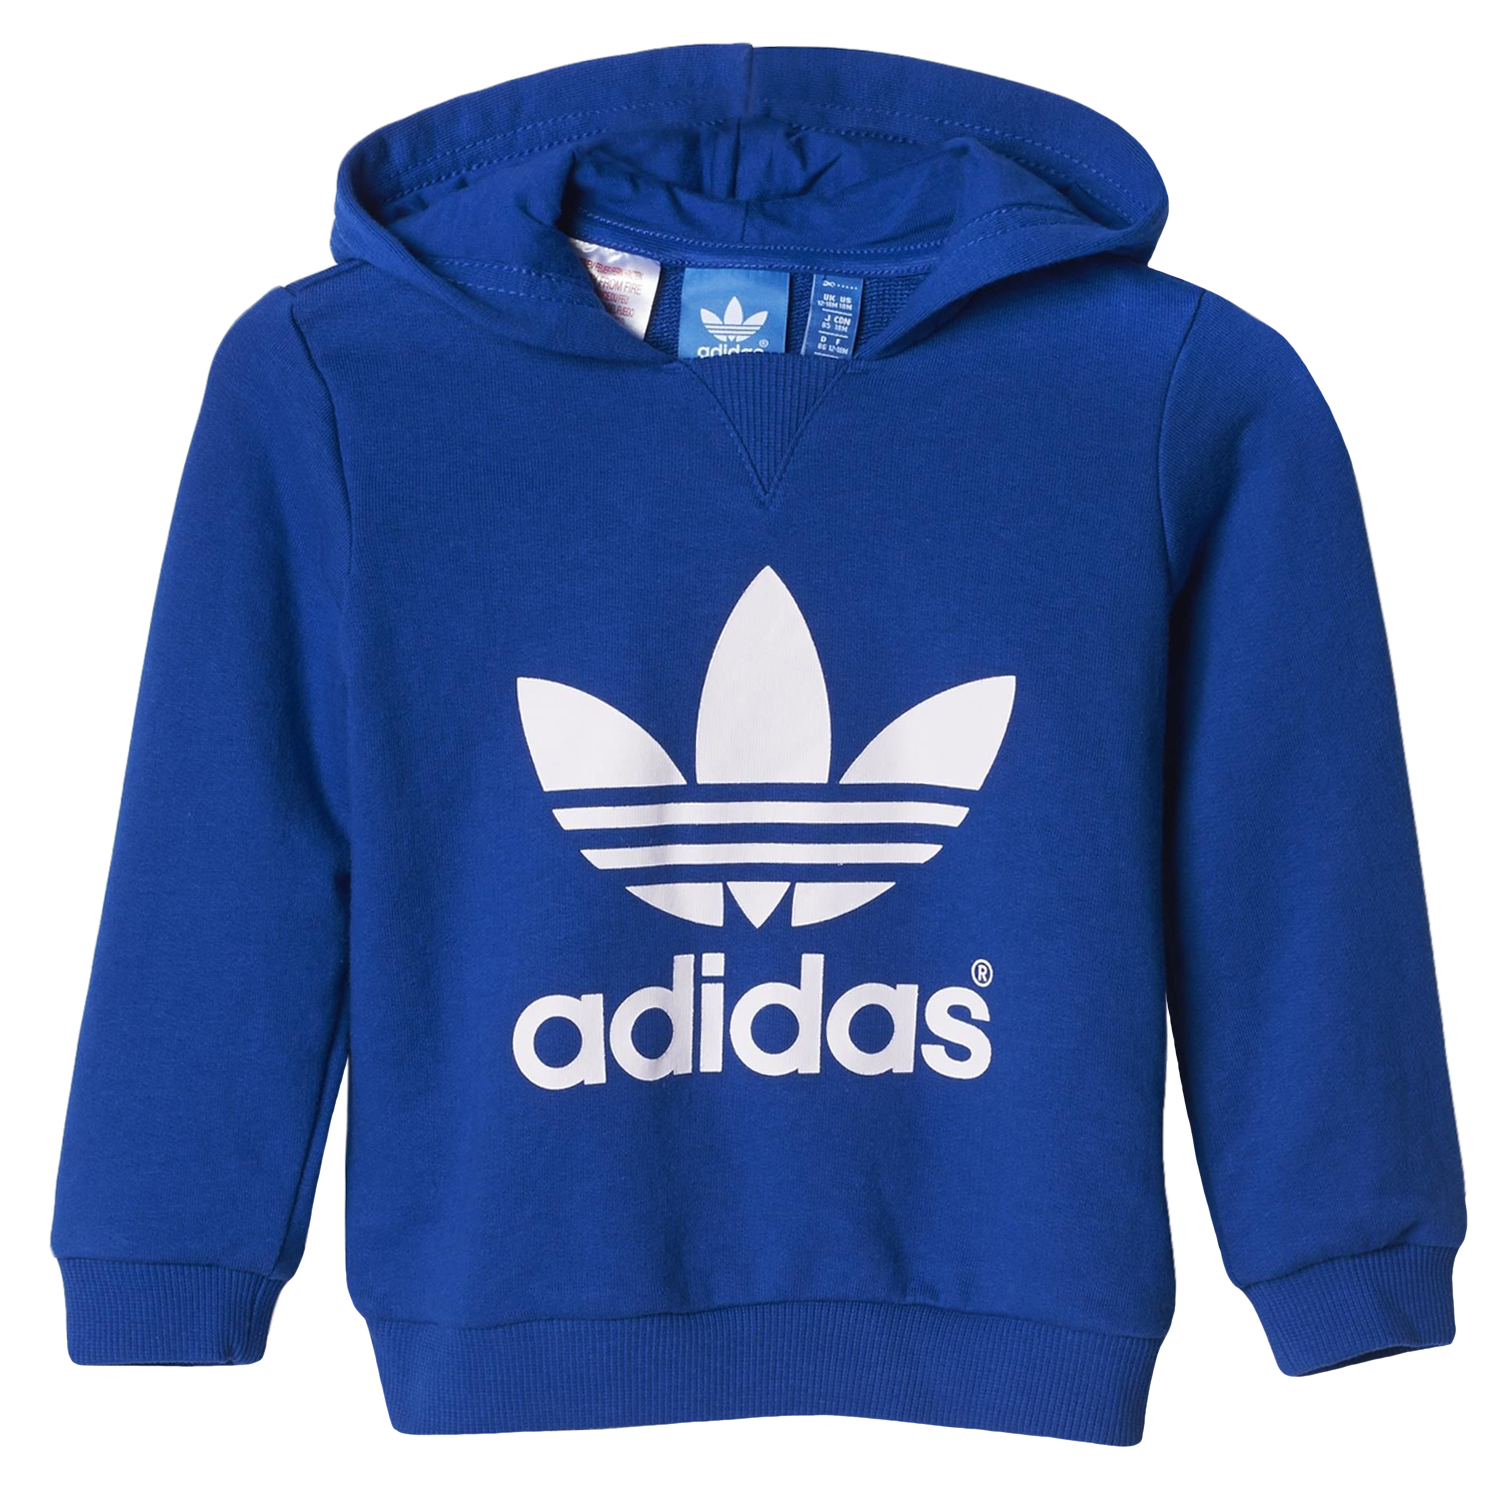 Adidas Originals Jumper Grey Full Zip Sweater